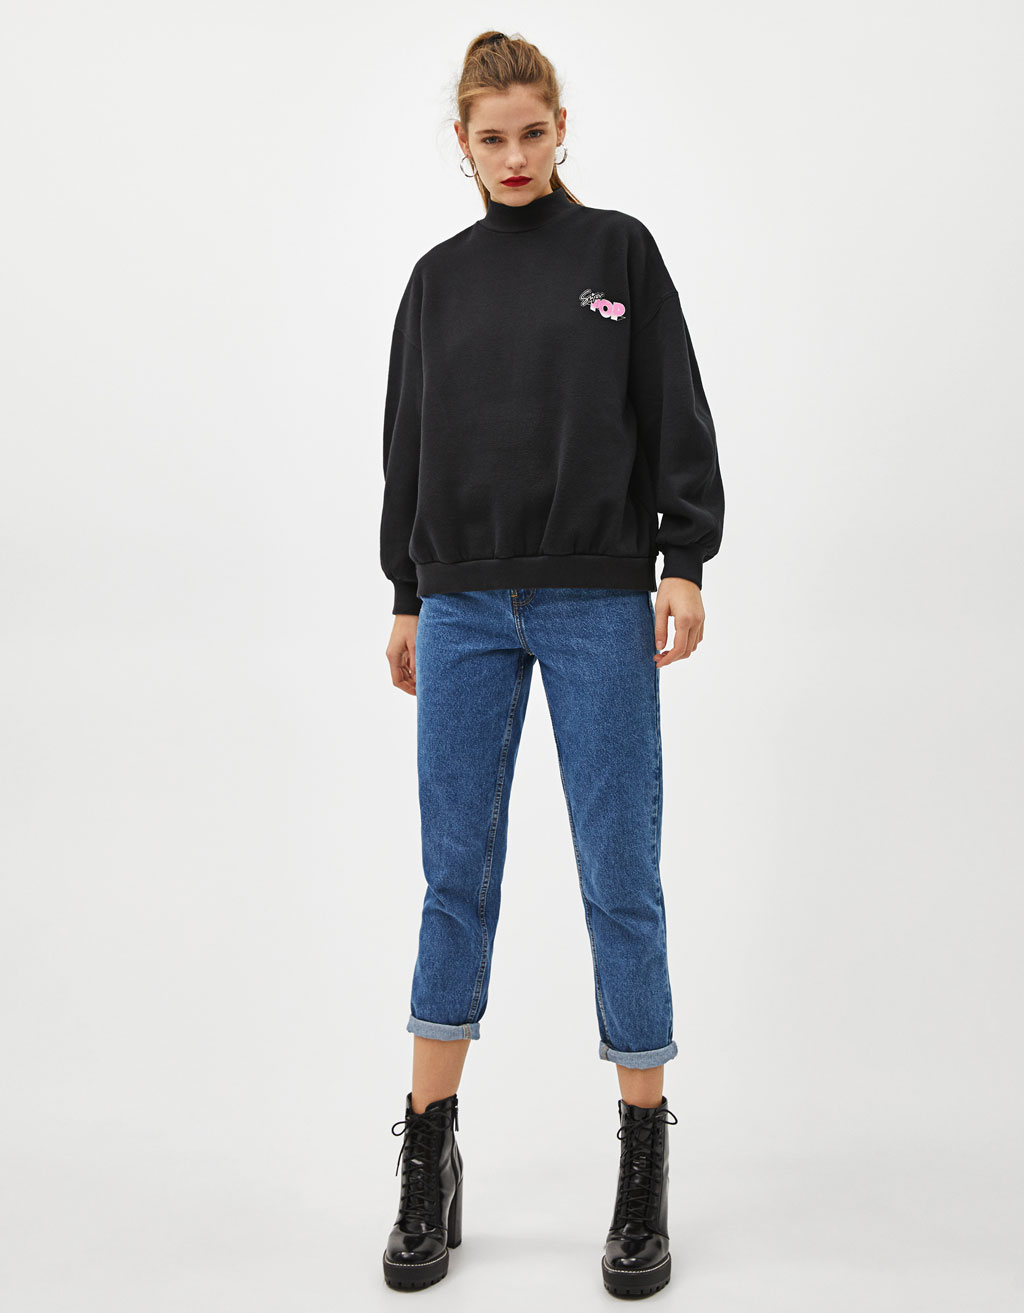 Súper Pop sweatshirt